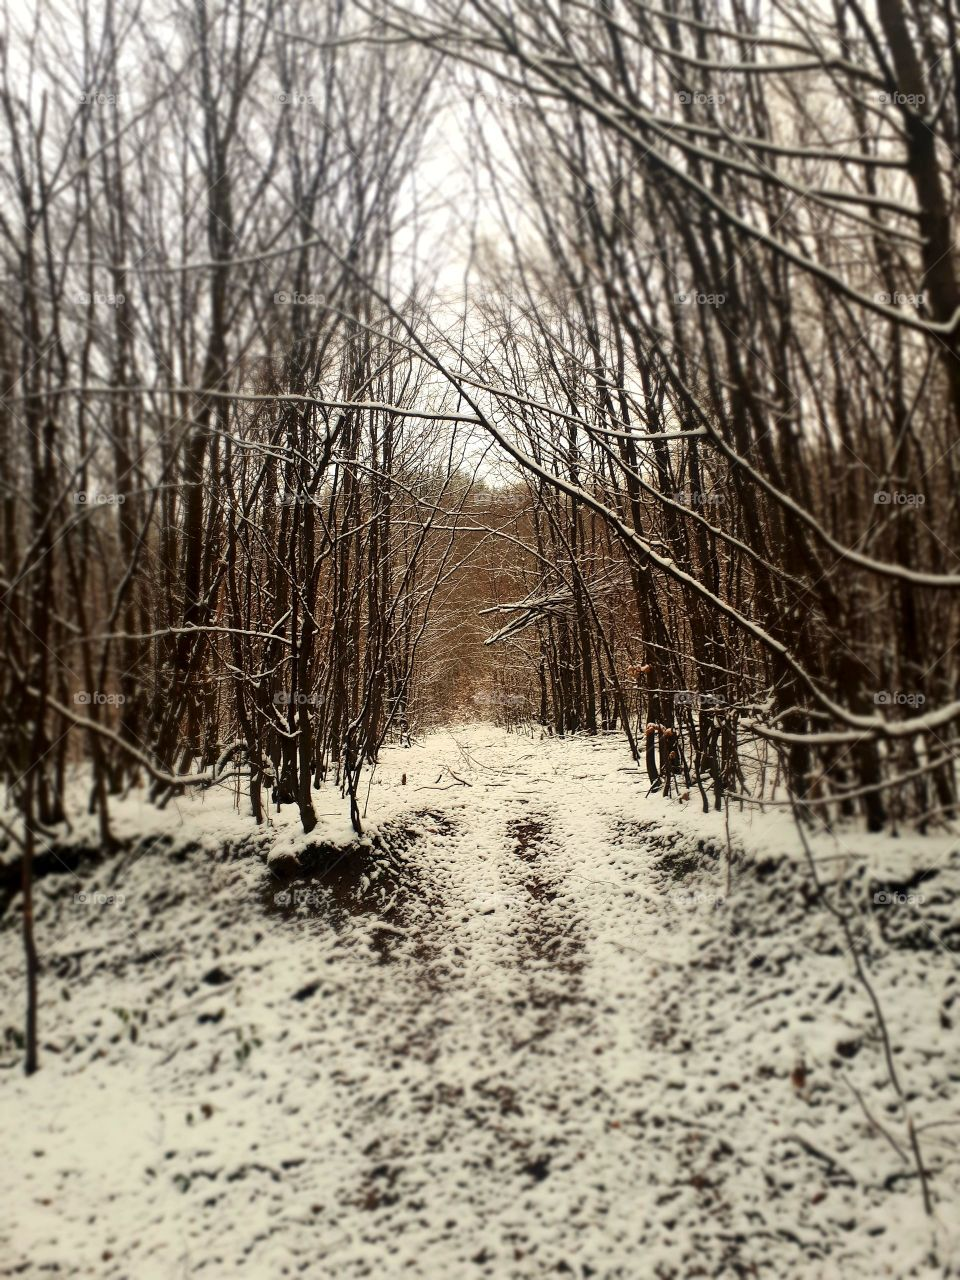 walk through the woods by taking the first snow